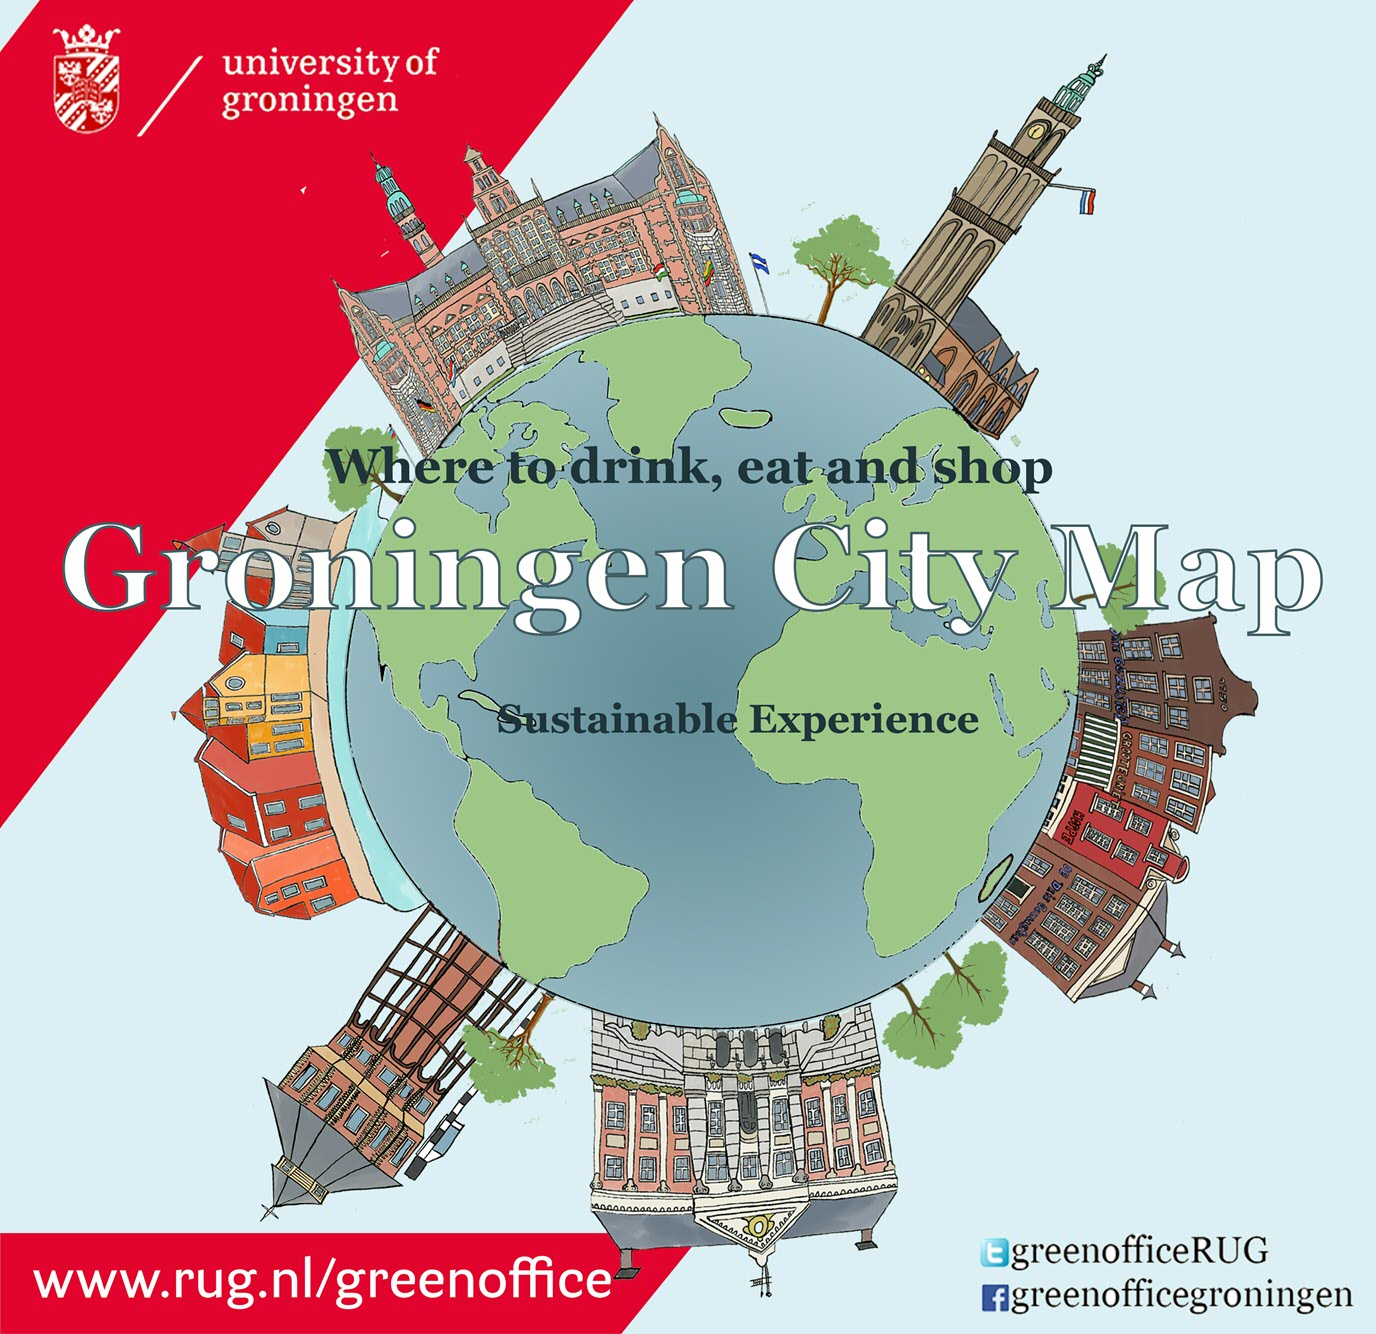 Green Office map shows sustainable shops restaurants in Groningen